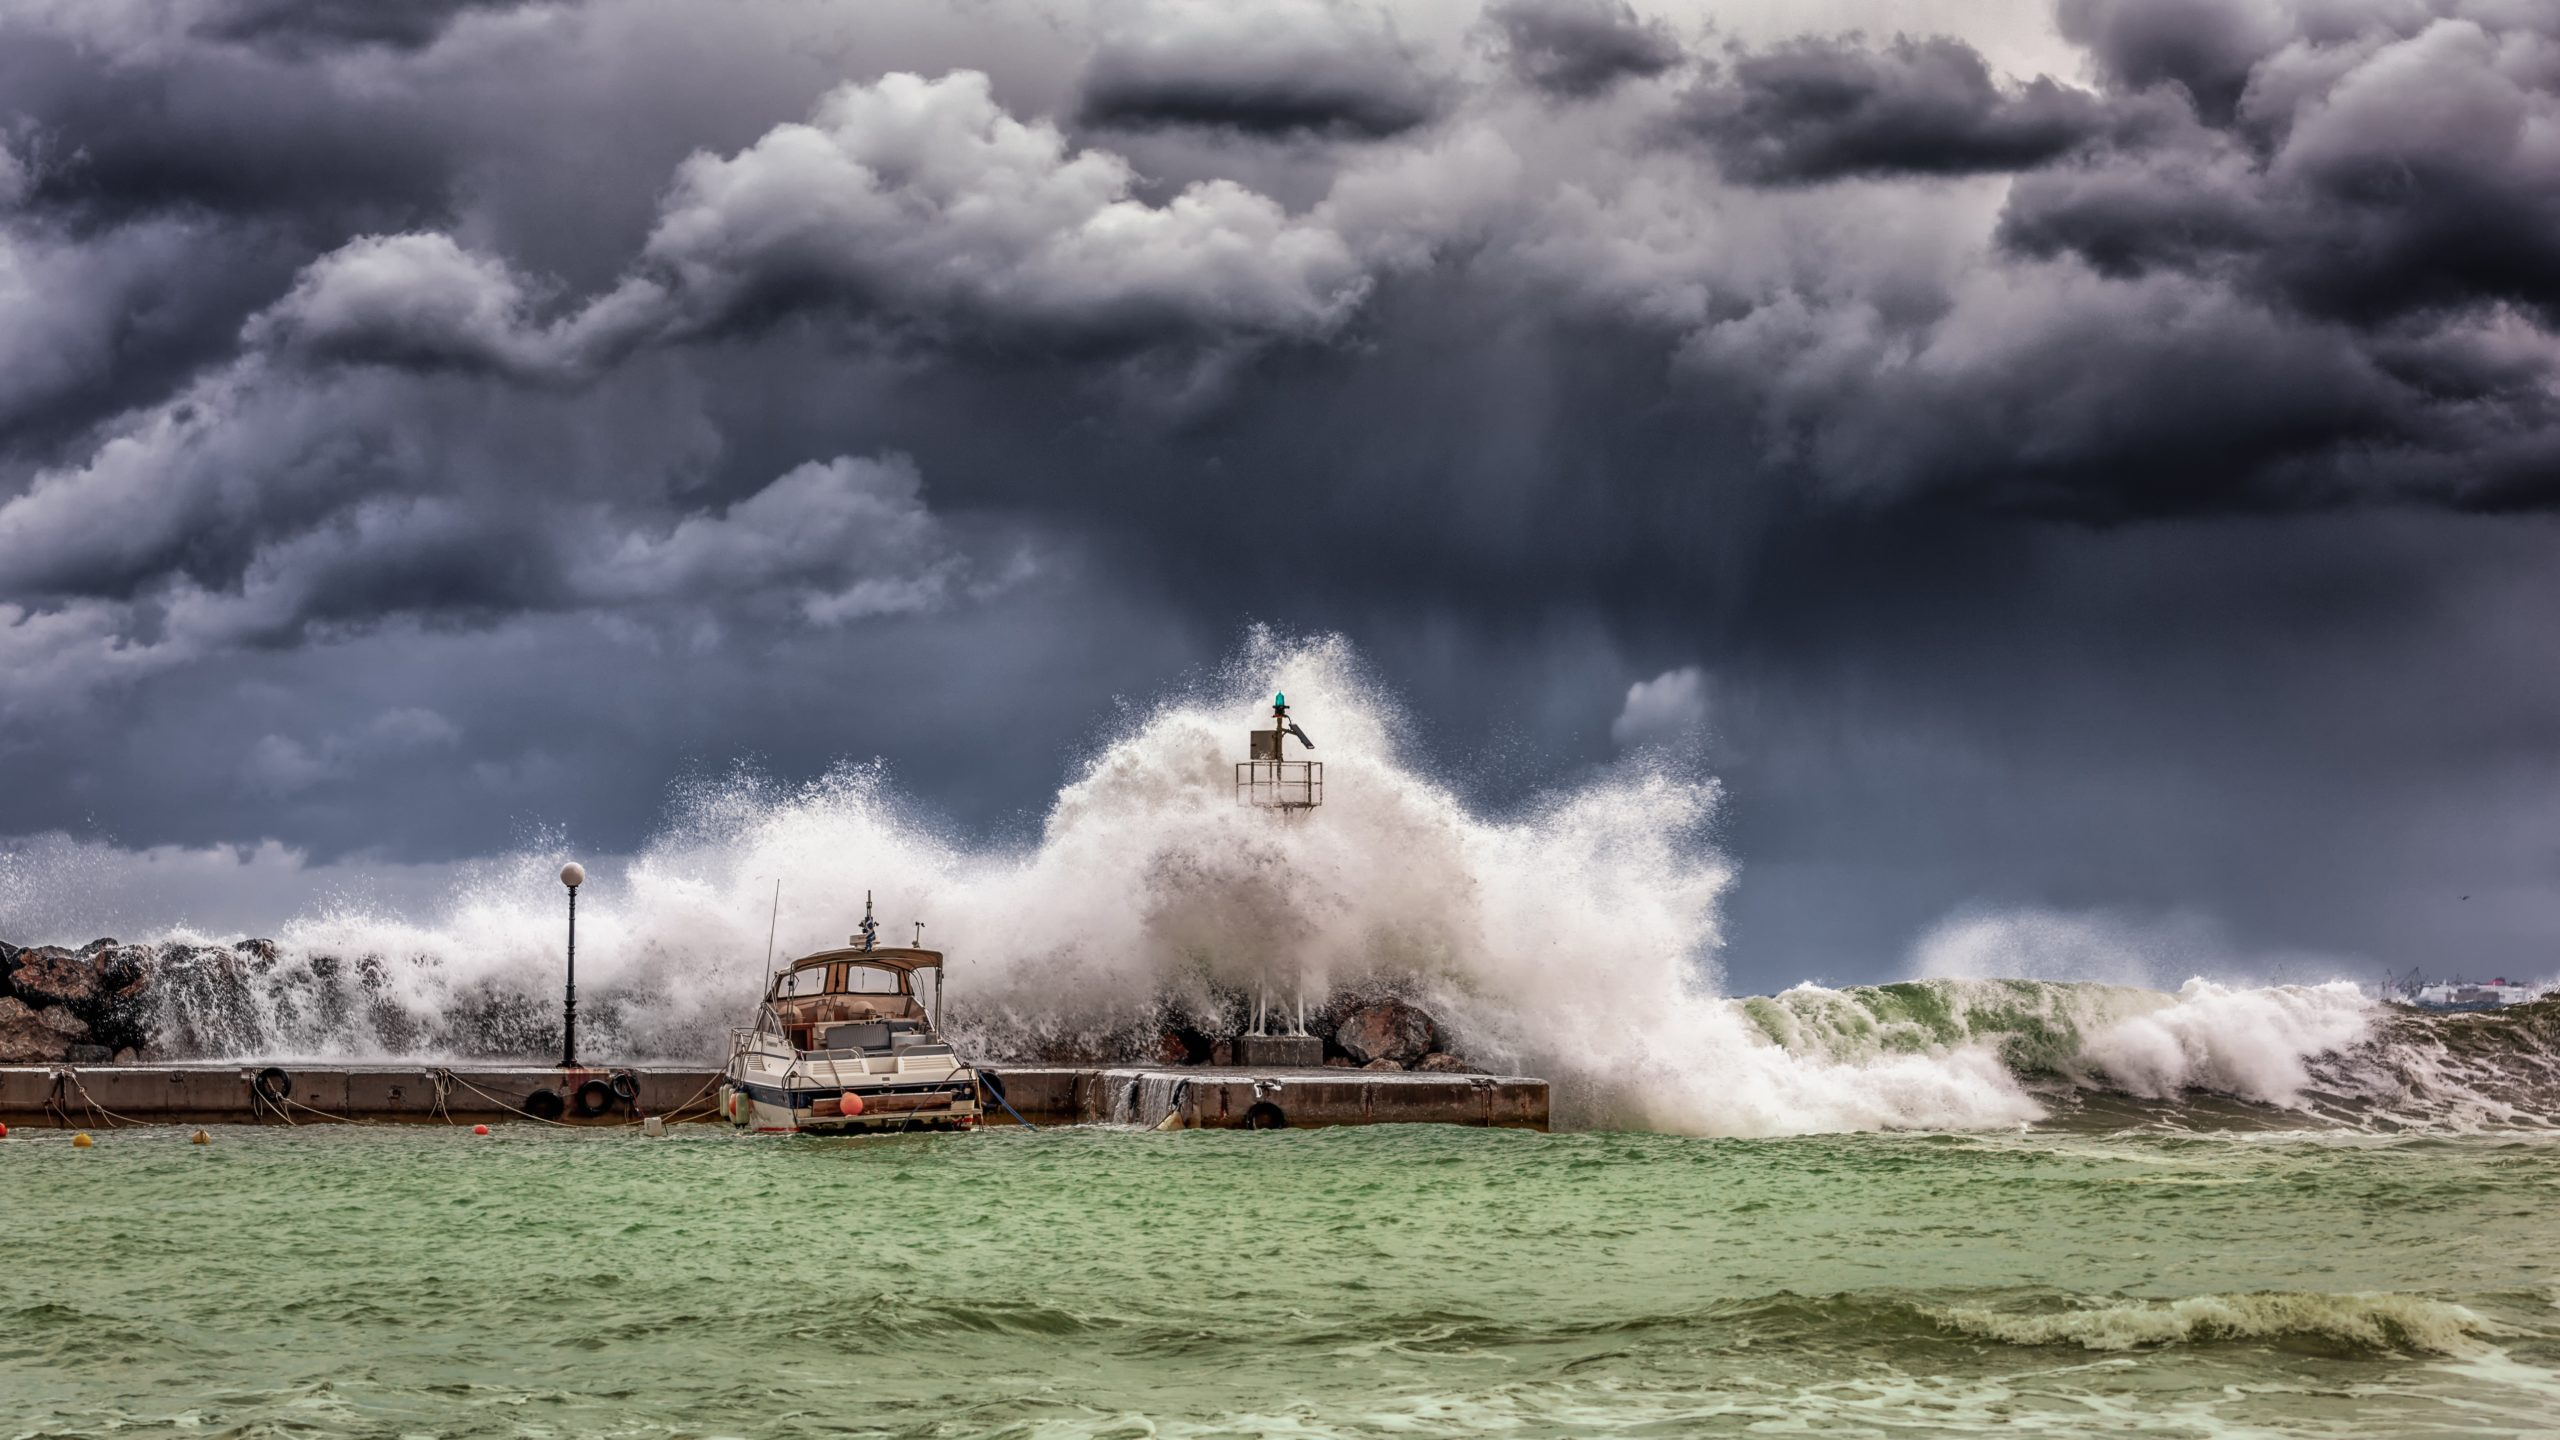 stormy ocean with boats and dark cloudy skies